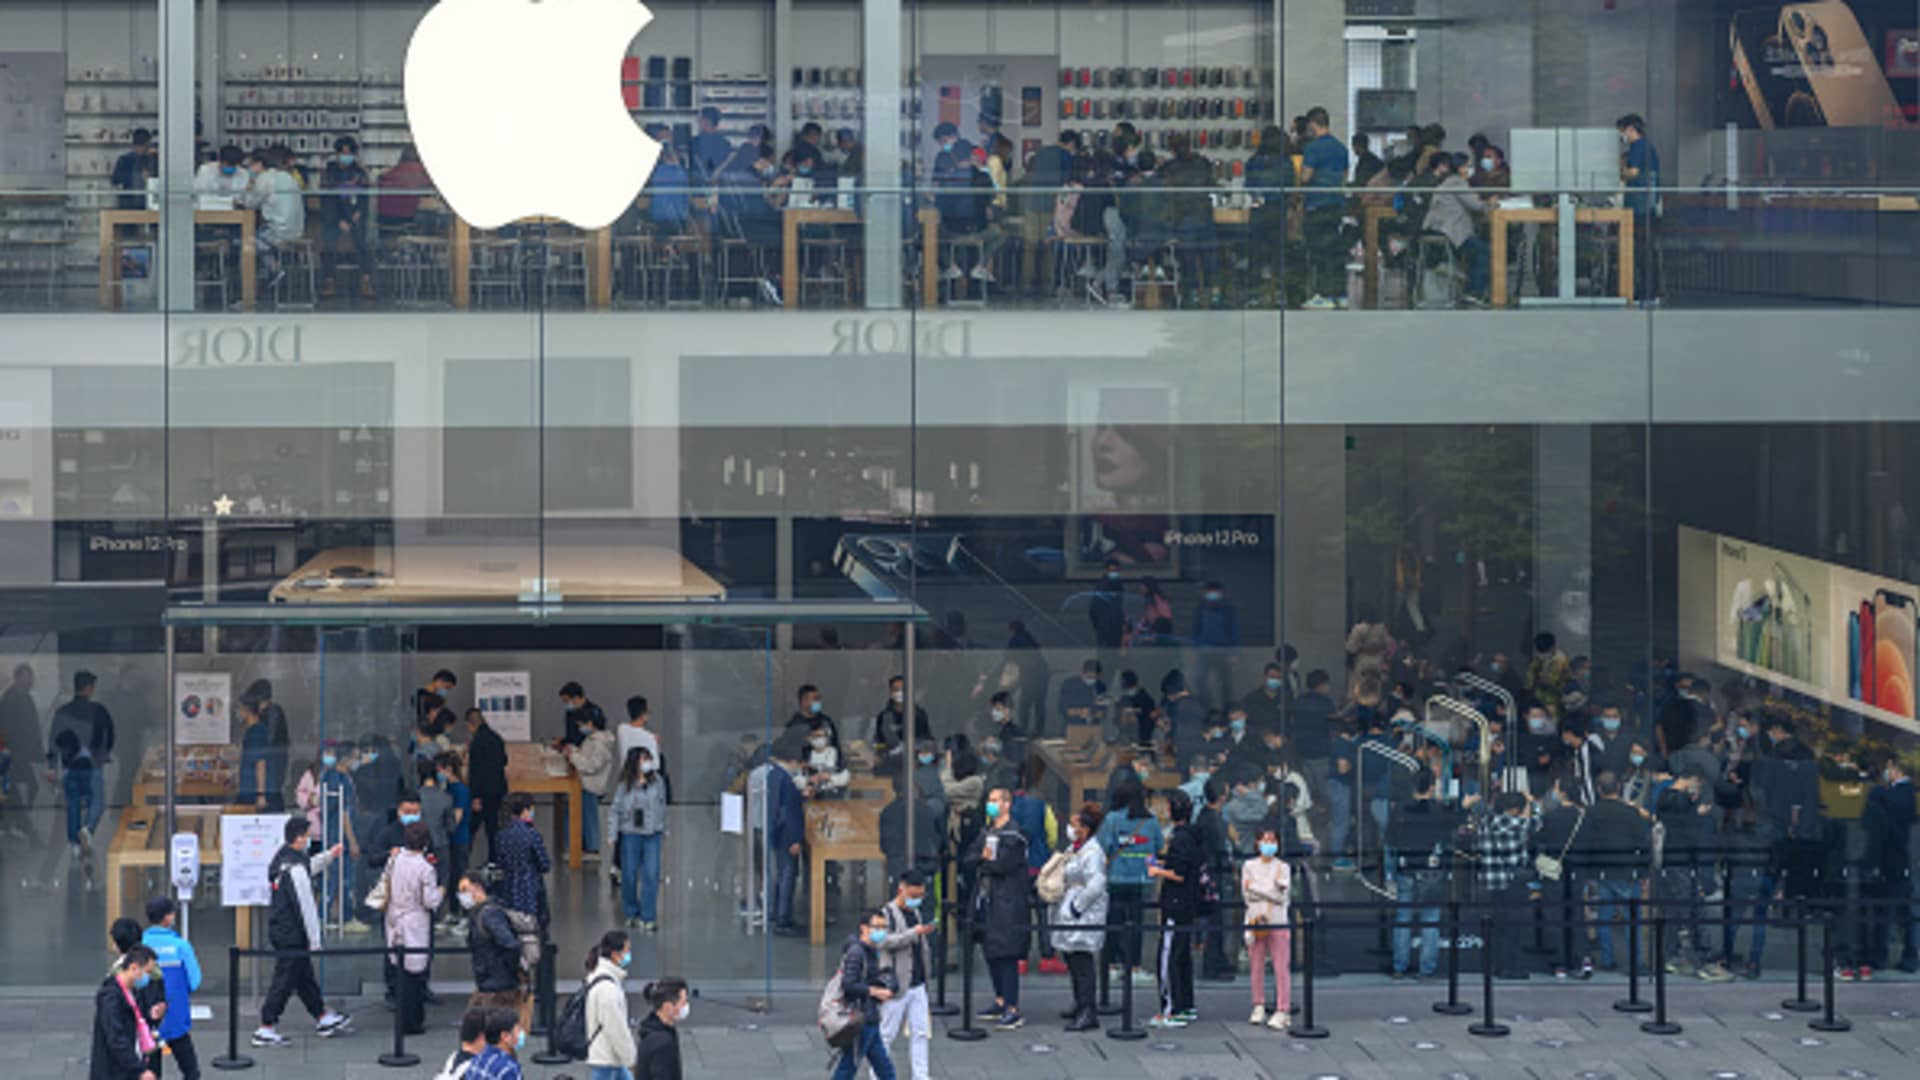 CHENGDU, CHINA - NOVEMBER 17: Customers line up to enter an Apple flagship store on November 17, 2020 in Chengdu, Sichuan Province of China. (Photo by Xie Li/VCG via Getty Images)